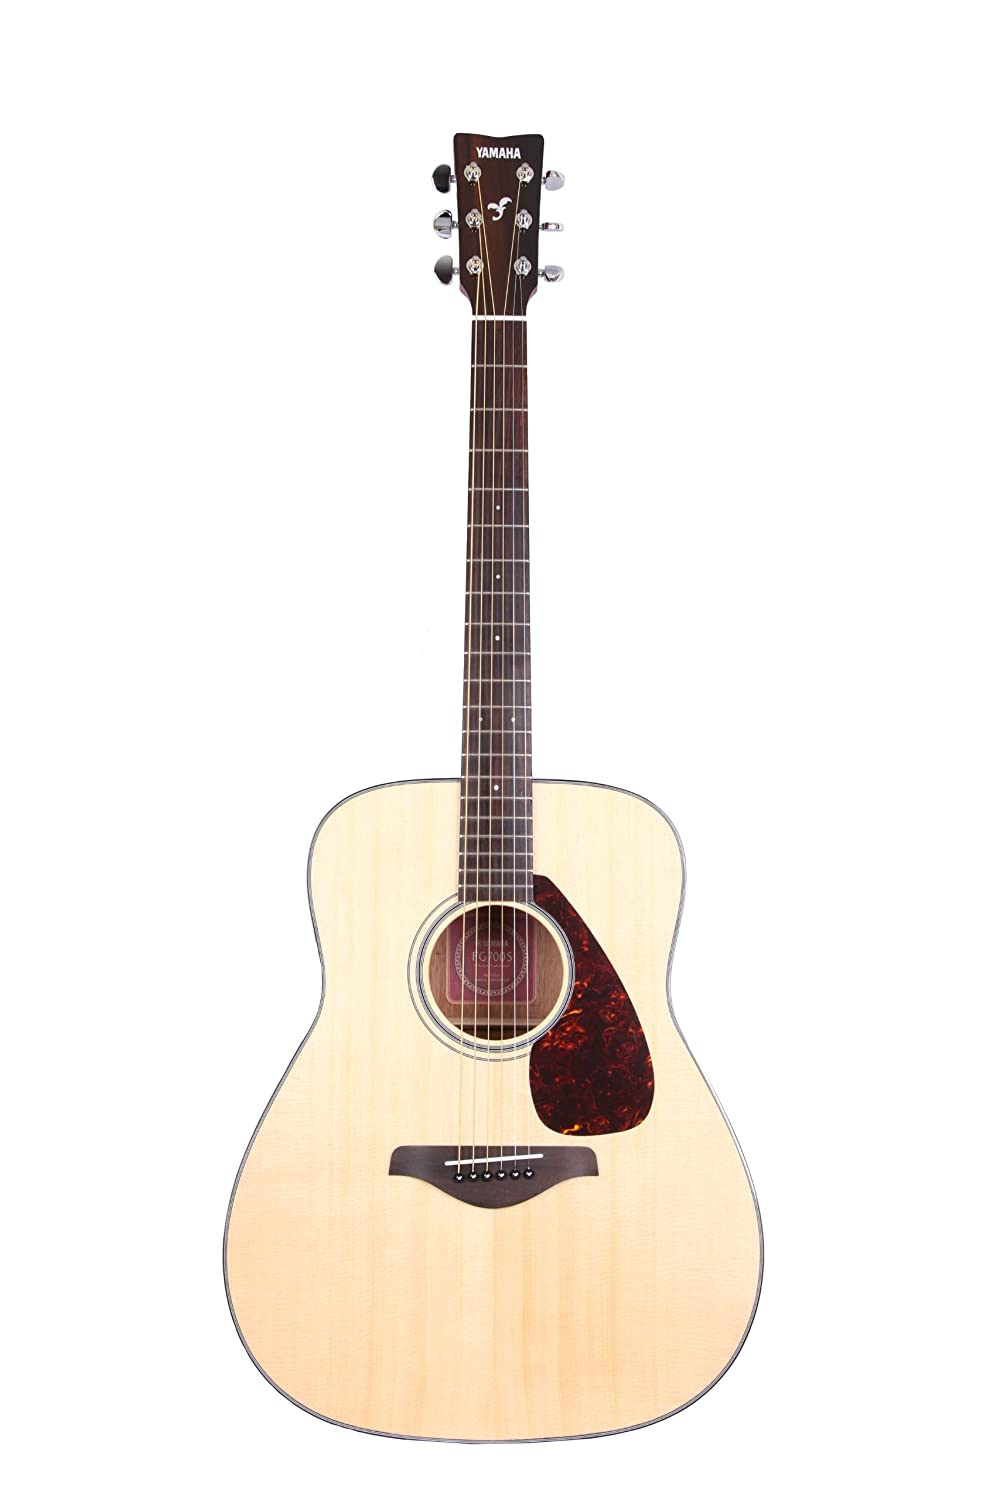 Yamaha FG700S good acoustic guitar for beginners